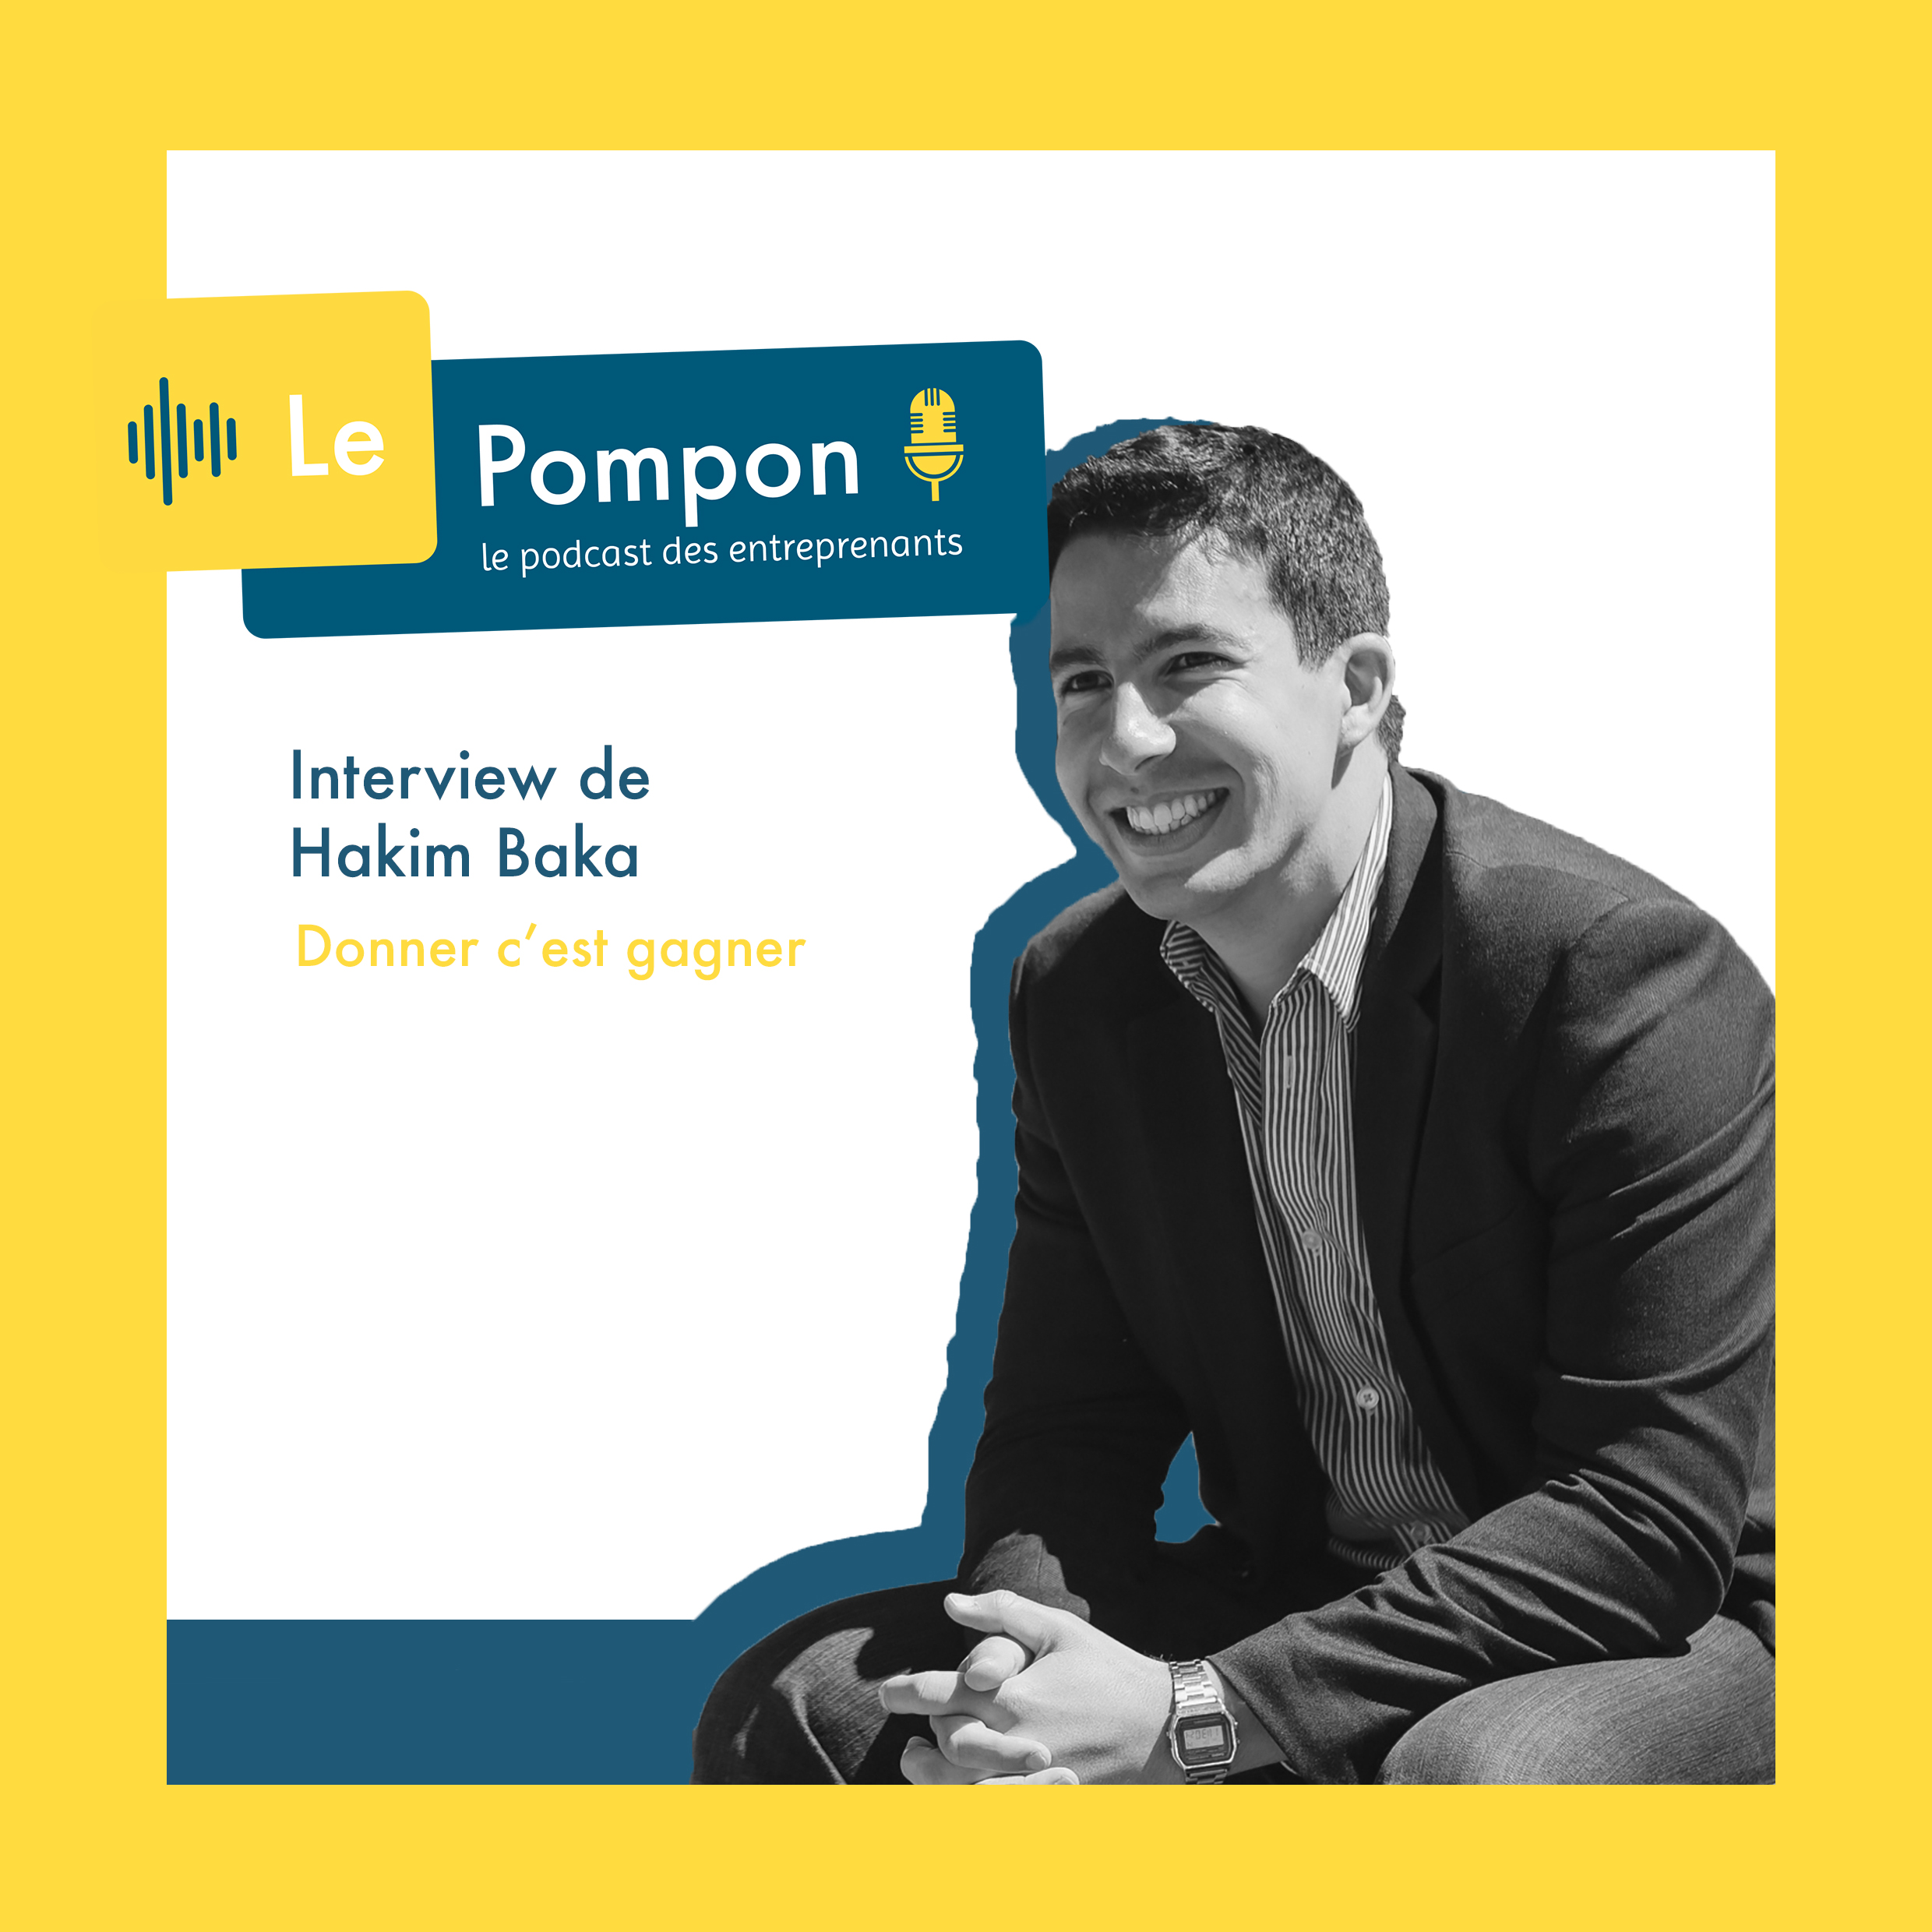 Illustration de l'épisode 12 du Podcast Le Pompon : Hakim Baka, CEO de GEEV